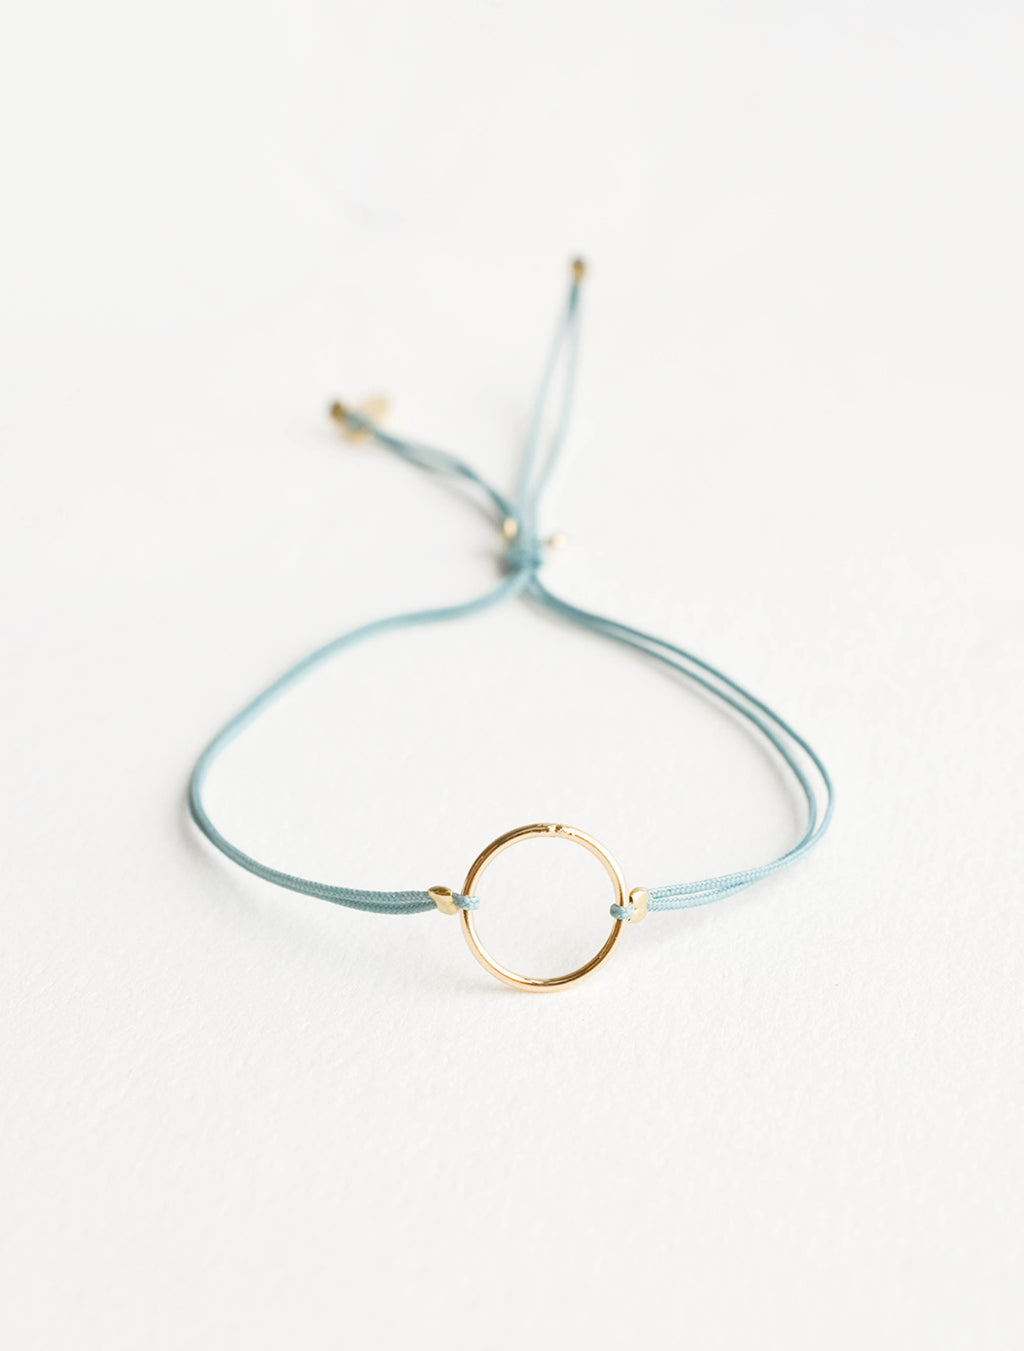 Teal: Bracelet with yellow gold circle charm centered on an adjustable teal string.